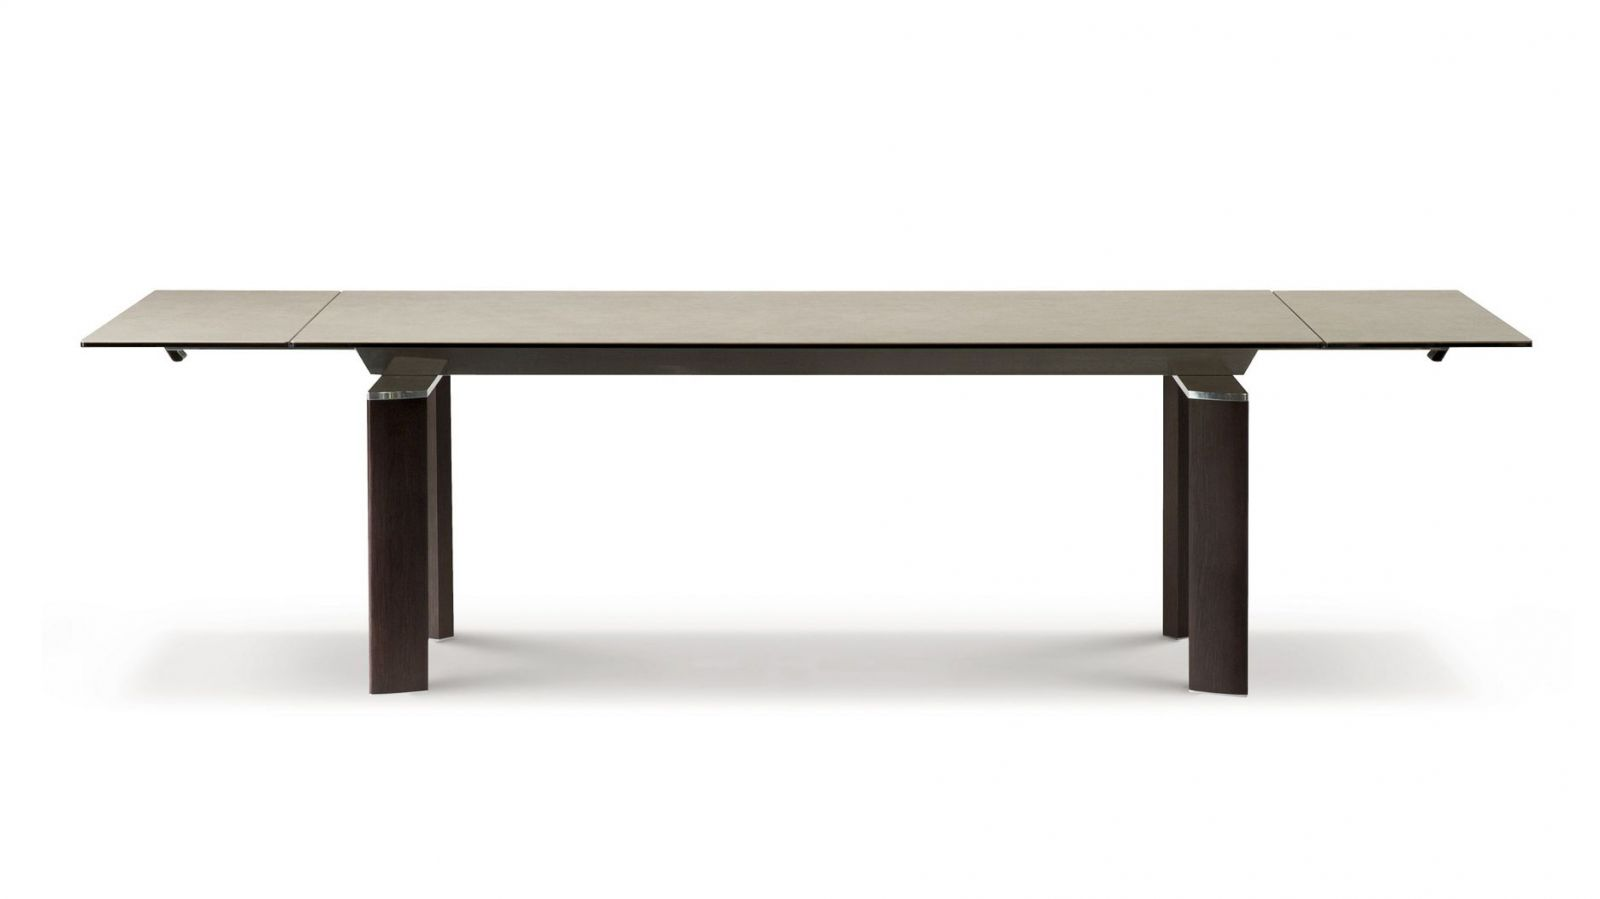 Grande table de repas roche bobois chrono wood meuble et for Grande table design